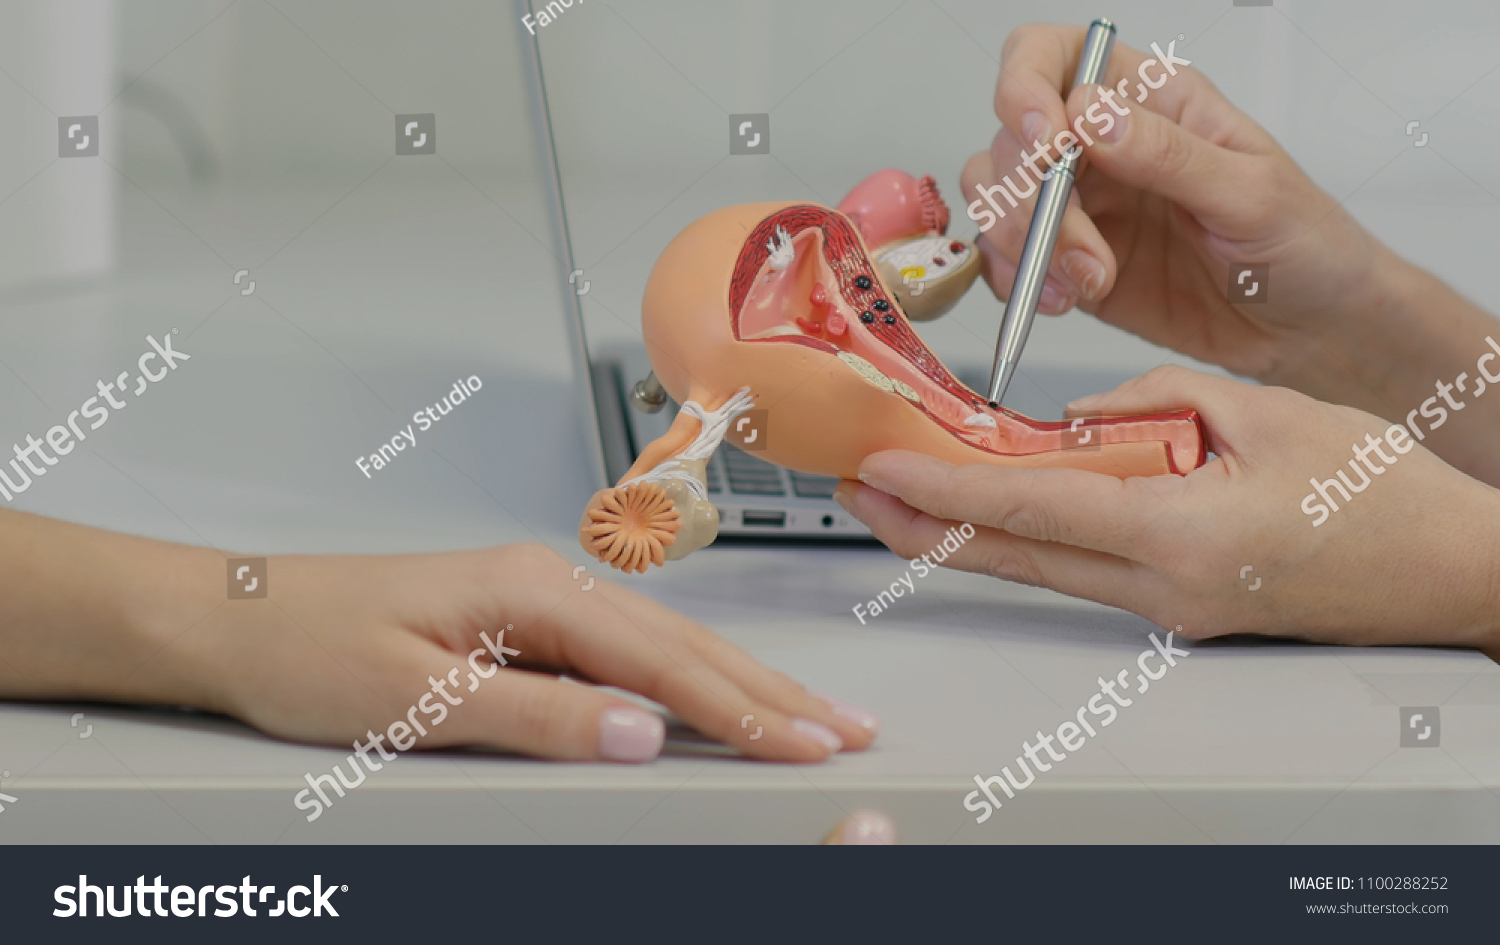 Gynecologist Doctor Consulting Patient Using Uterus Stockfoto Jetzt